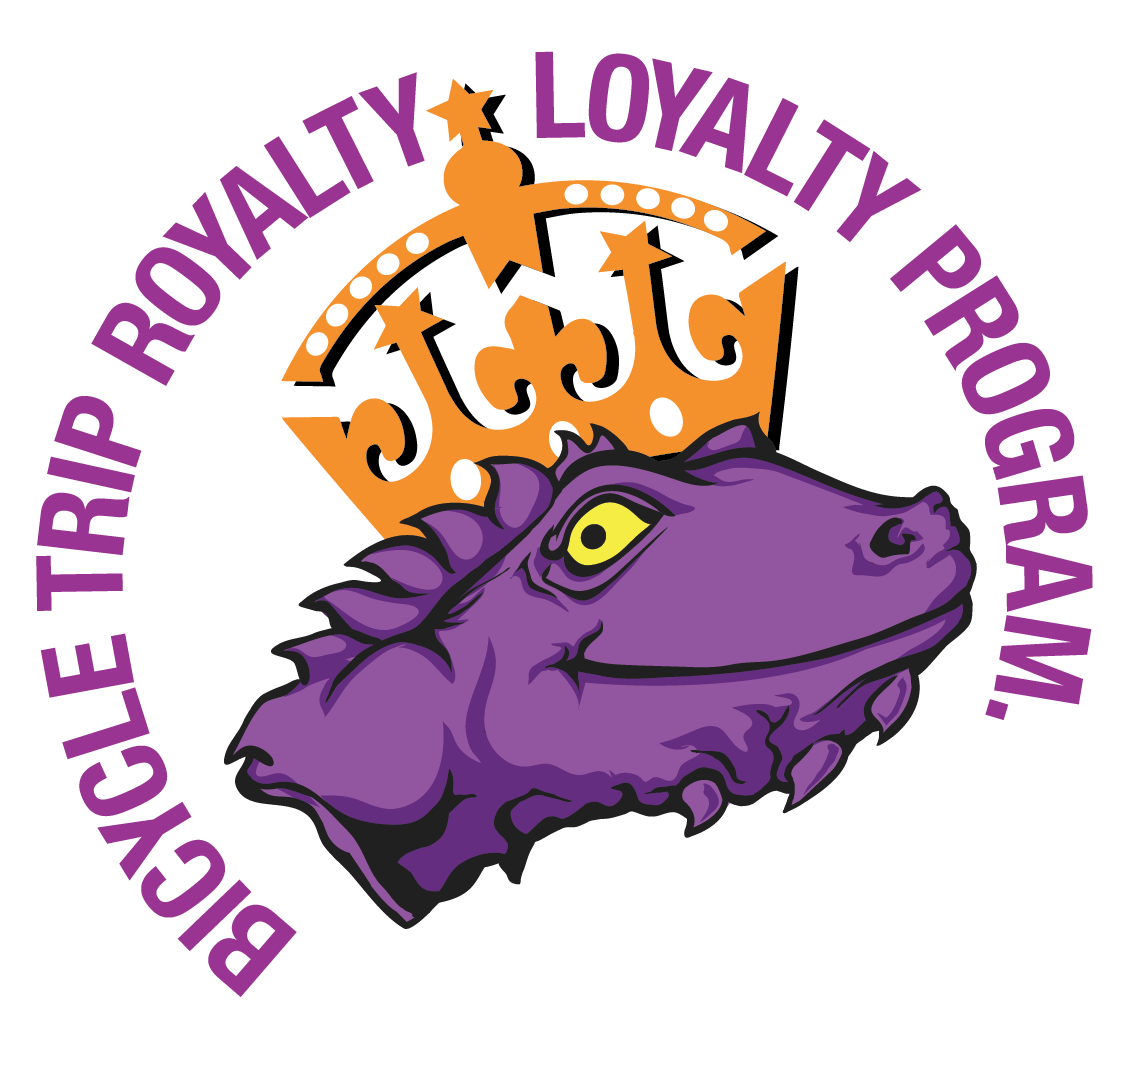 Bicycle Trip Royalty Loyalty Program